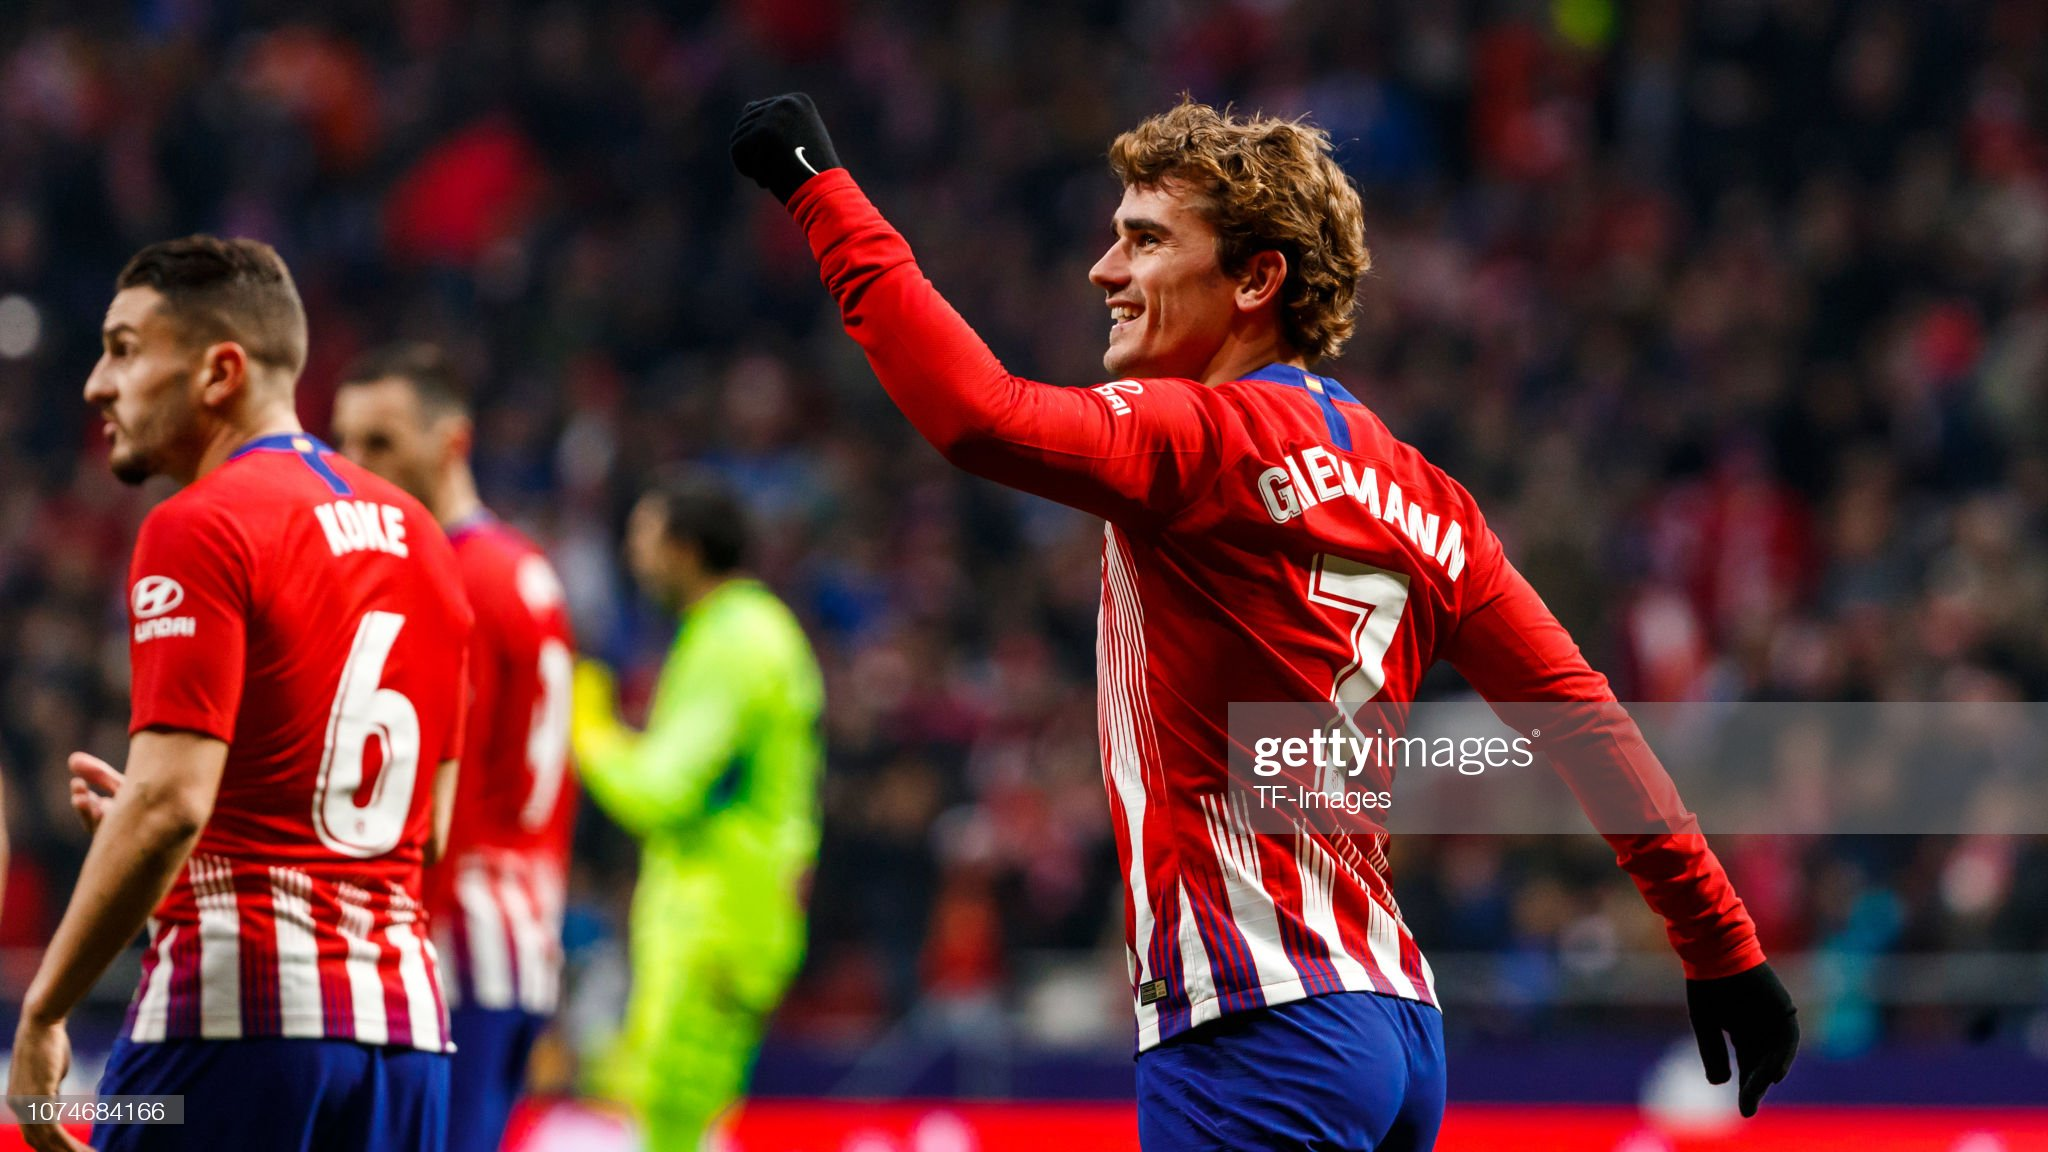 Atletico Madrid v Espanyol - La Liga Santander : News Photo